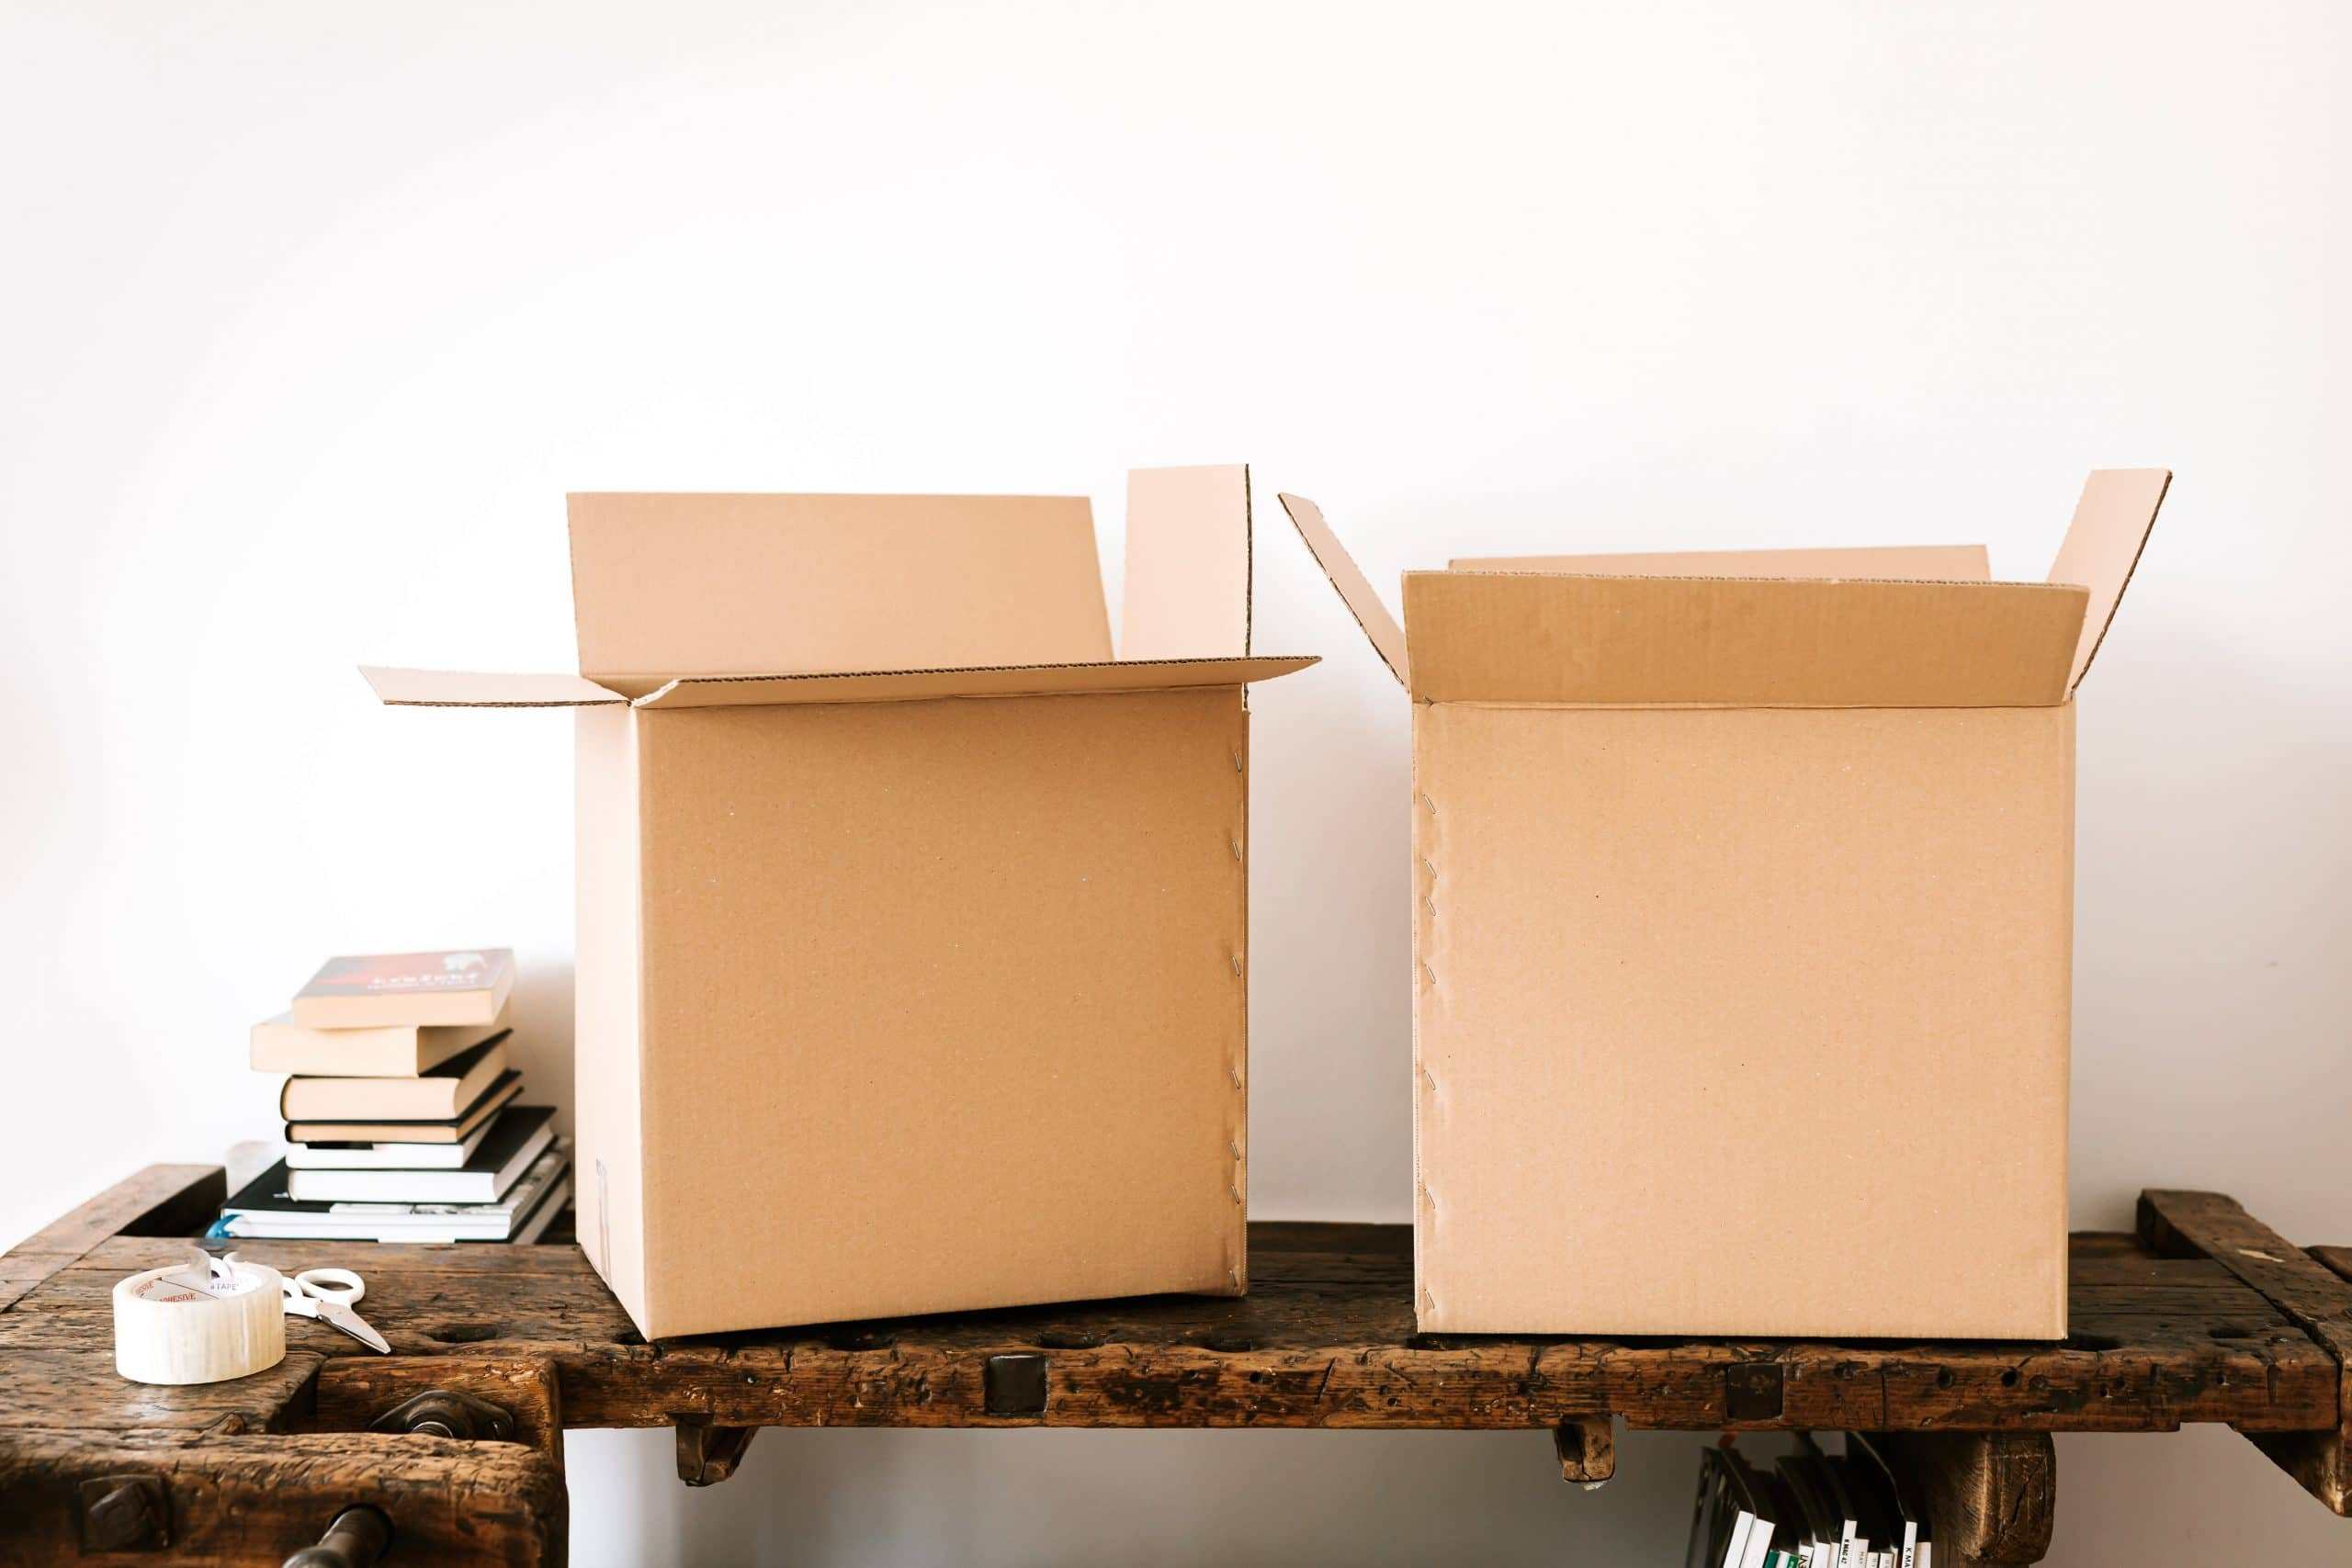 Cardboard boxes on bench